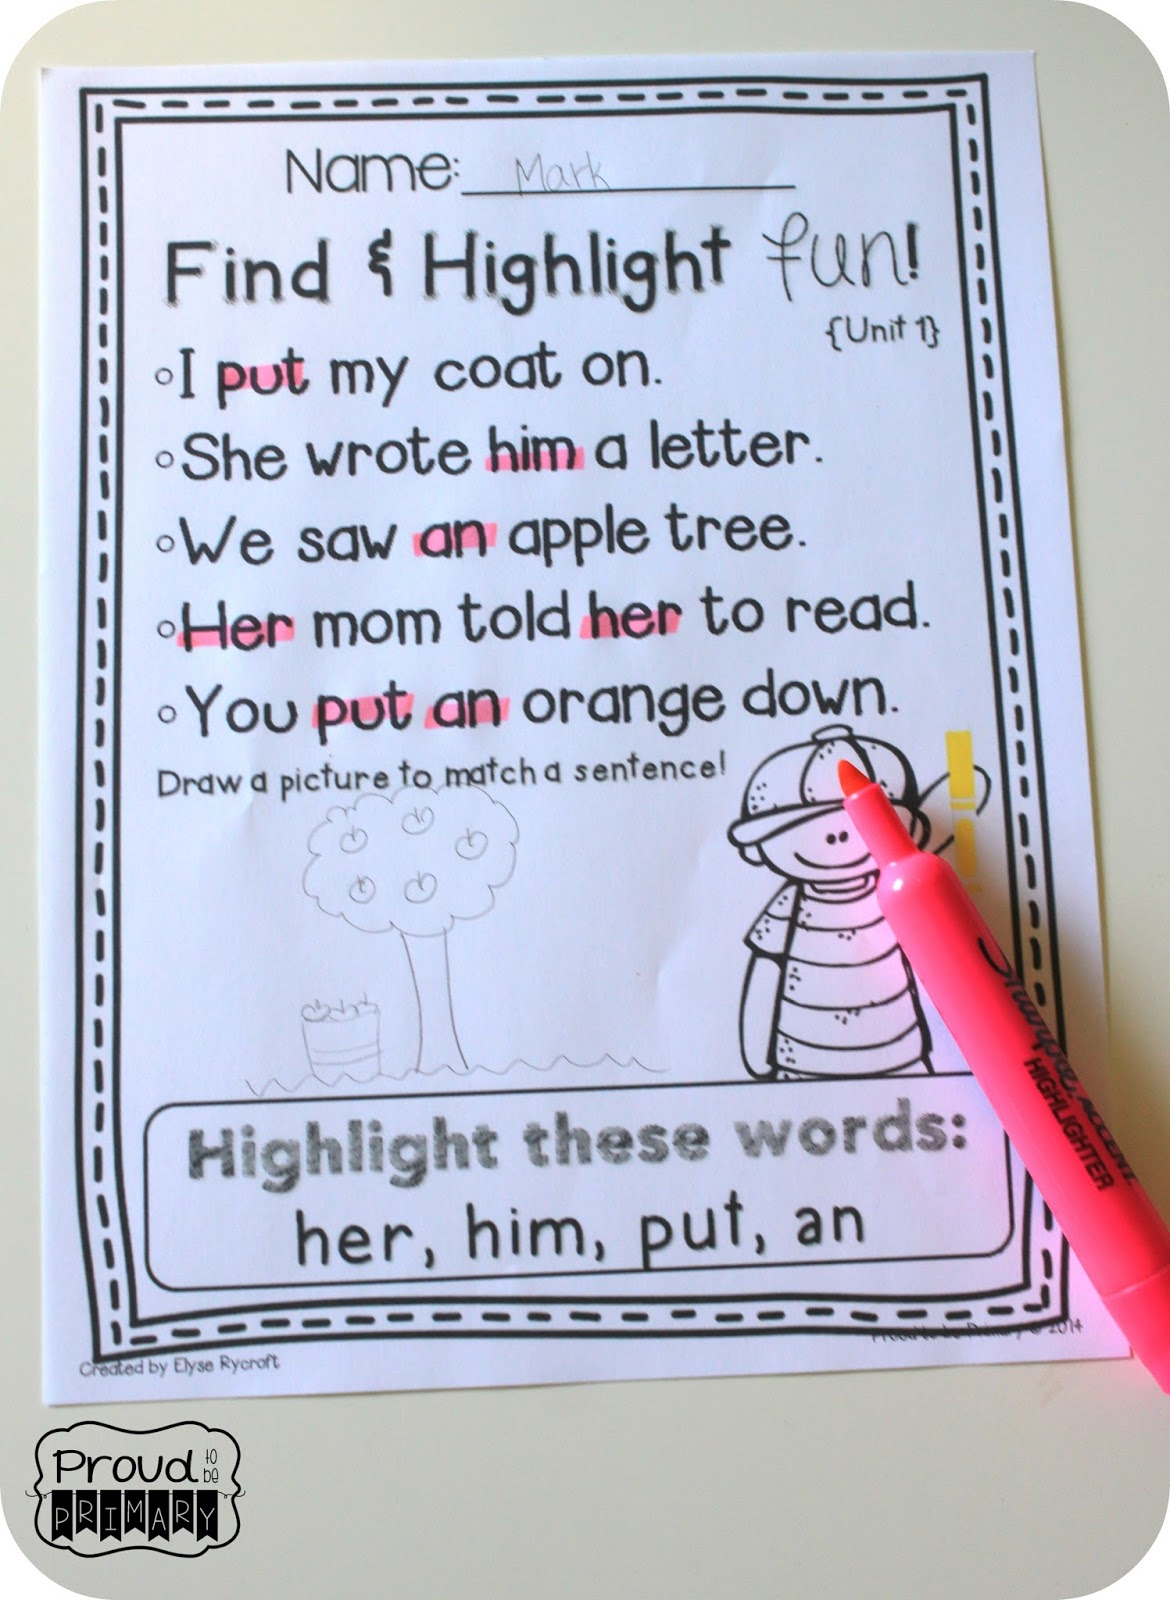 Learning Sight Words To Read And Spell Fluently Proud To